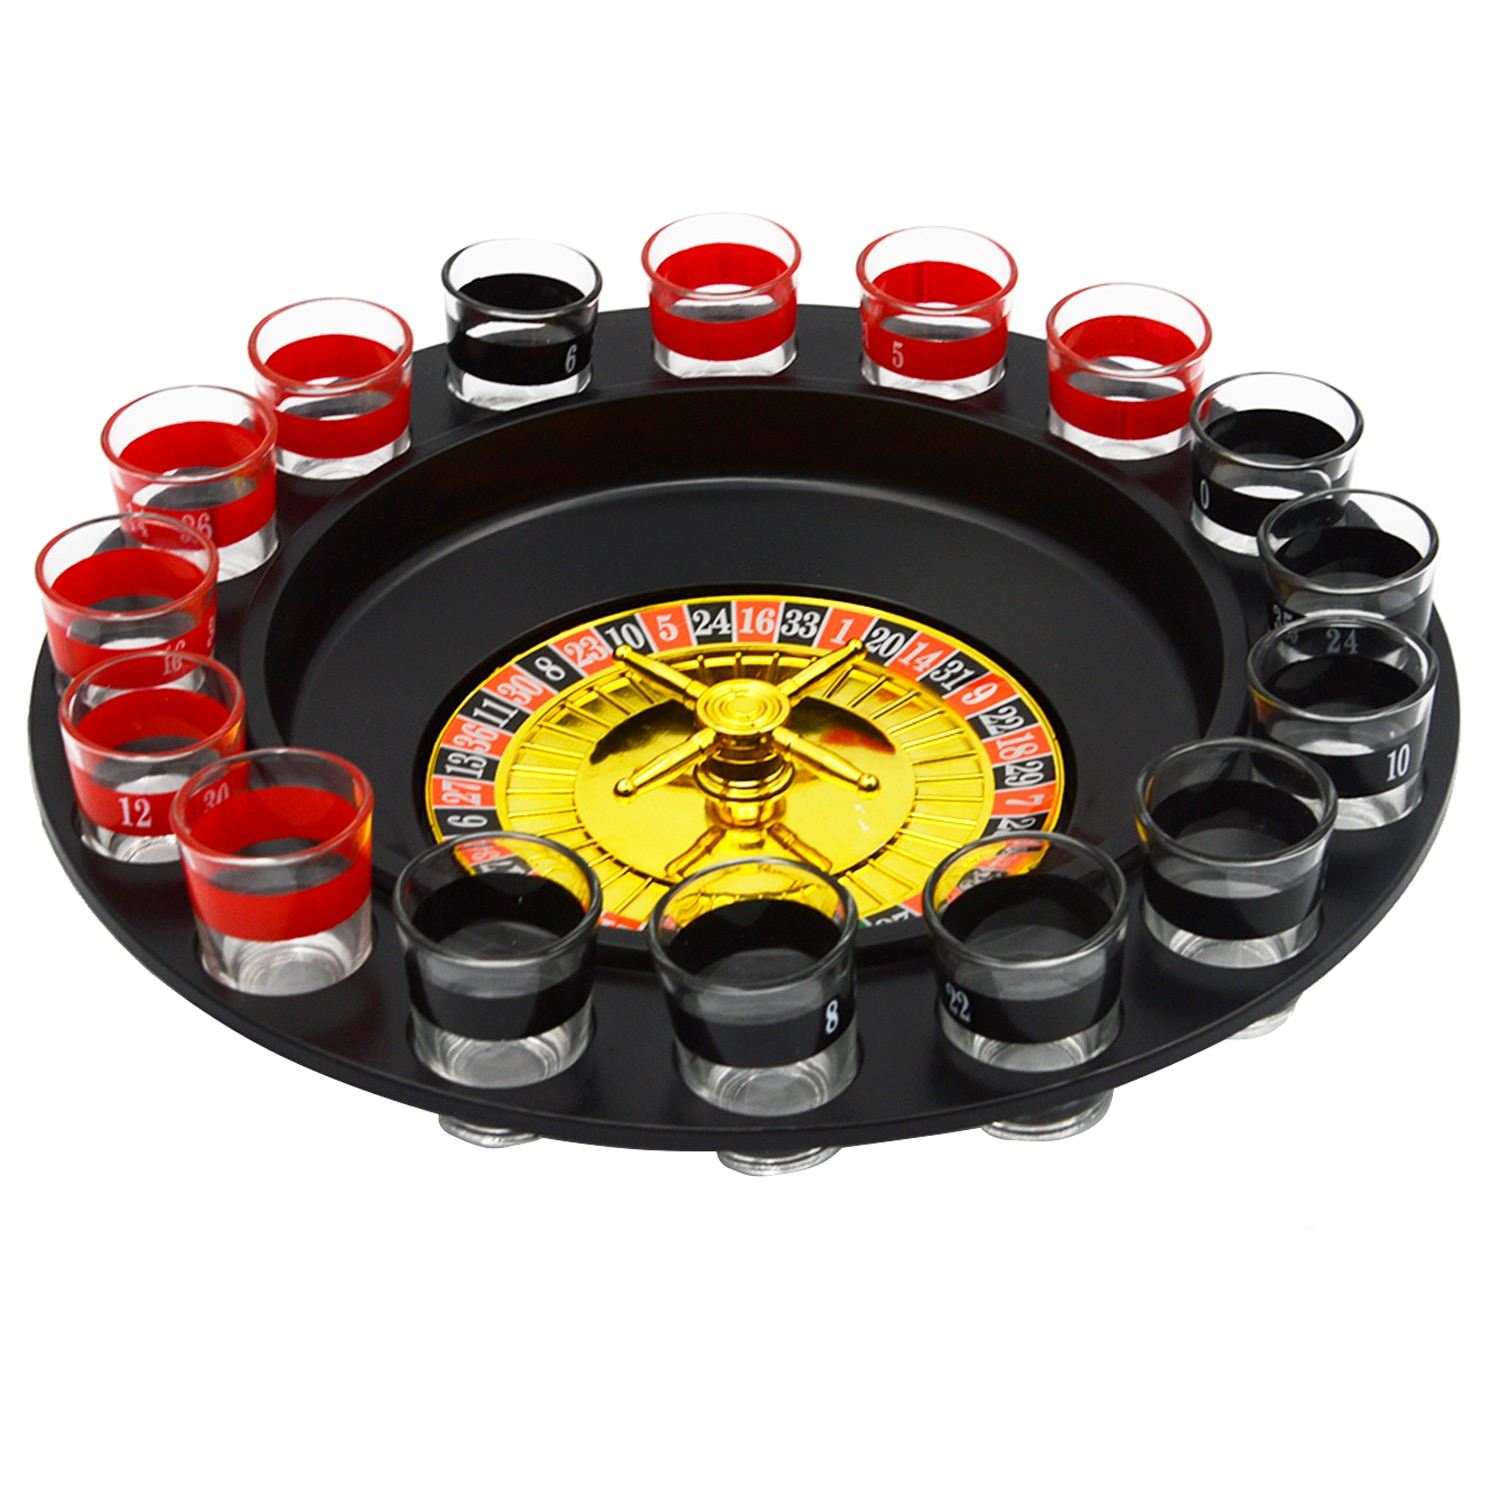 Besegad Spin Shot Glass Russian Roulette Wheel Turntable Fun Table Drinking Game Set with 2 Balls 16Glasses Novelty Drinking Set